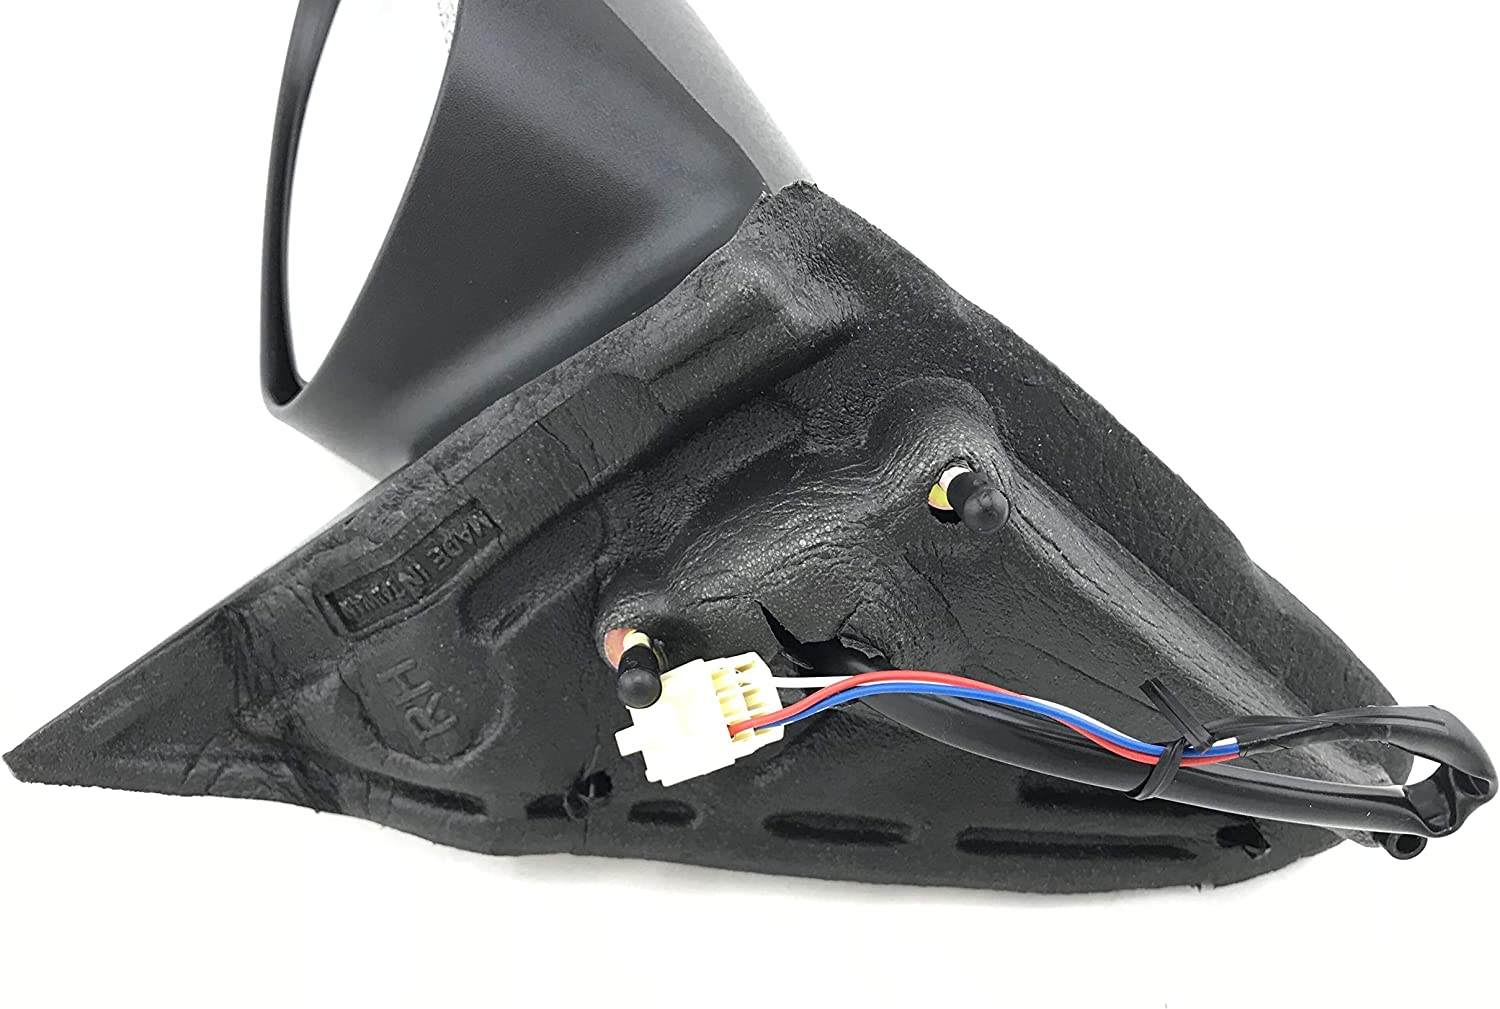 TEXTURED   Right Outside Rear View Mirror Passenger Side Mirror for SEBRING//DG STRATUS SDN 01-06 N-FLD RH OE: CH1321211 Parts Link #: 4805310AD